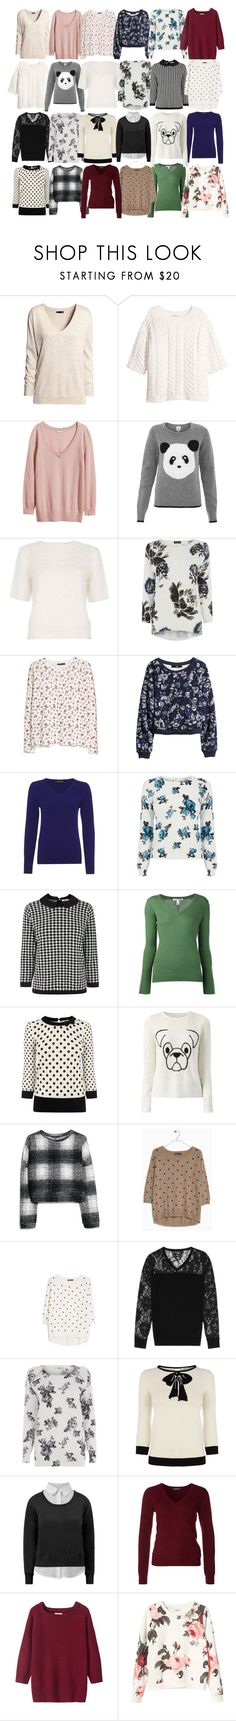 """""""Lydia Inspired UK Friendly Sweaters"""" by veterization ❤ liked on Polyvore featuring H&M, Yumi, Quiz, Warehouse, MANGO, Jaeger, Oasis, Autumn Cashmere, Fashion Union and Reiss"""